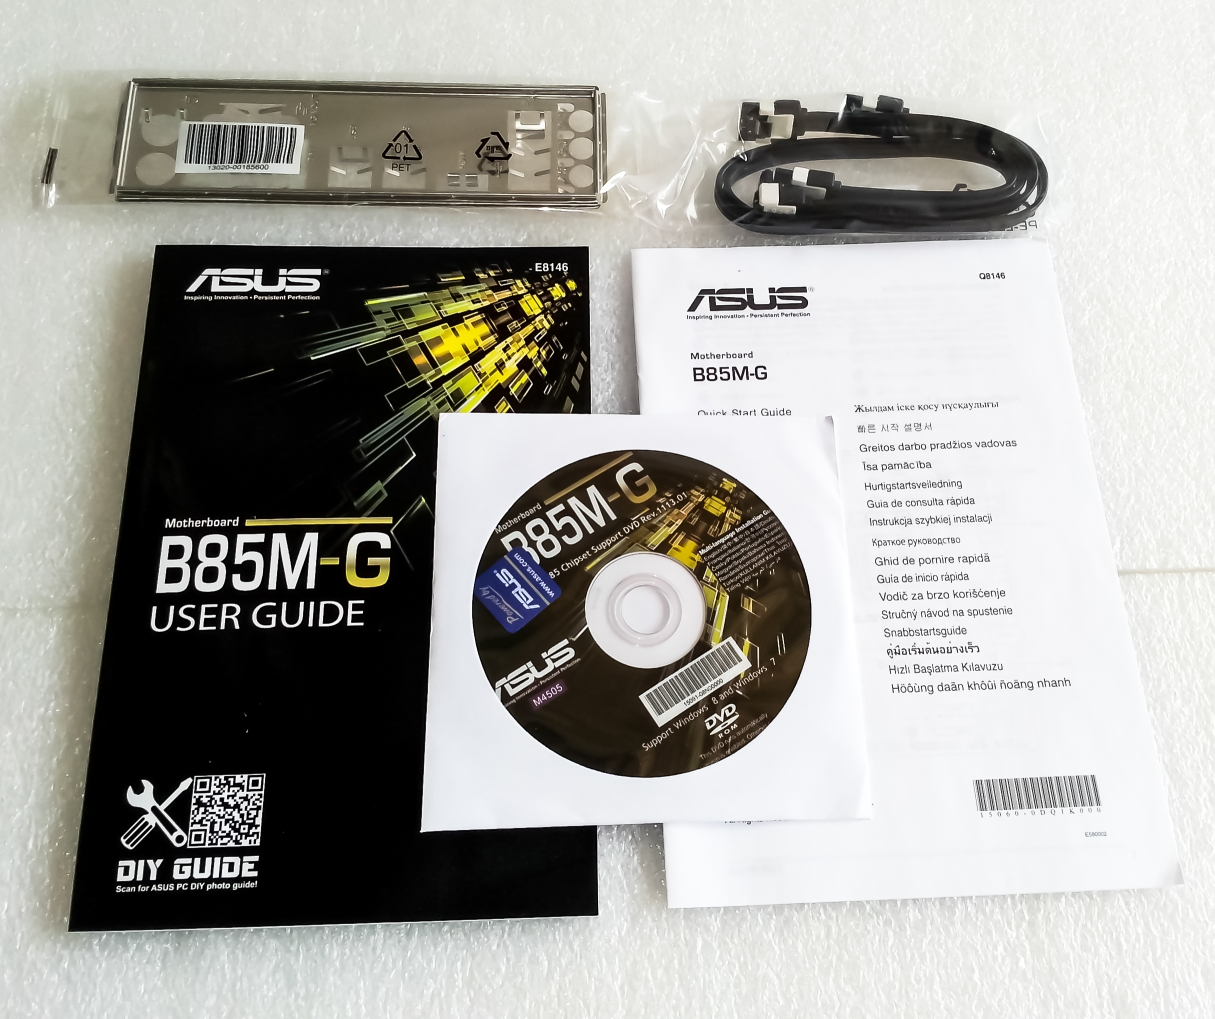 ASUS B85M-G Haswell Motherboard - Cheap and Reliable? - The